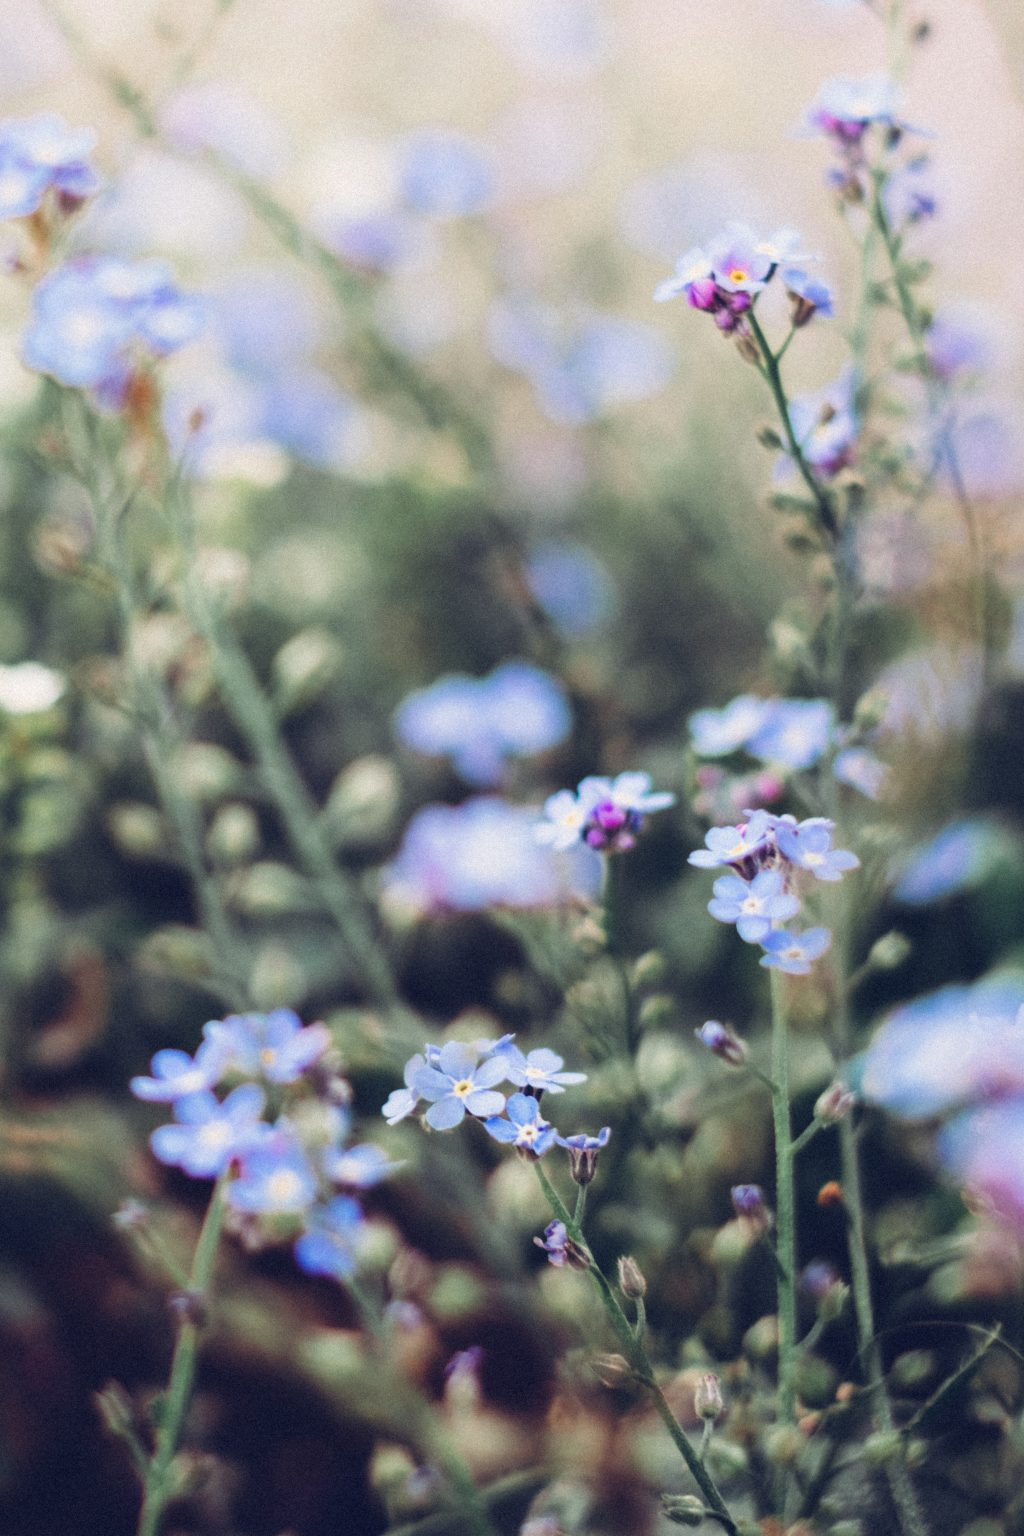 Forget-me-nots 6 - free stock photo